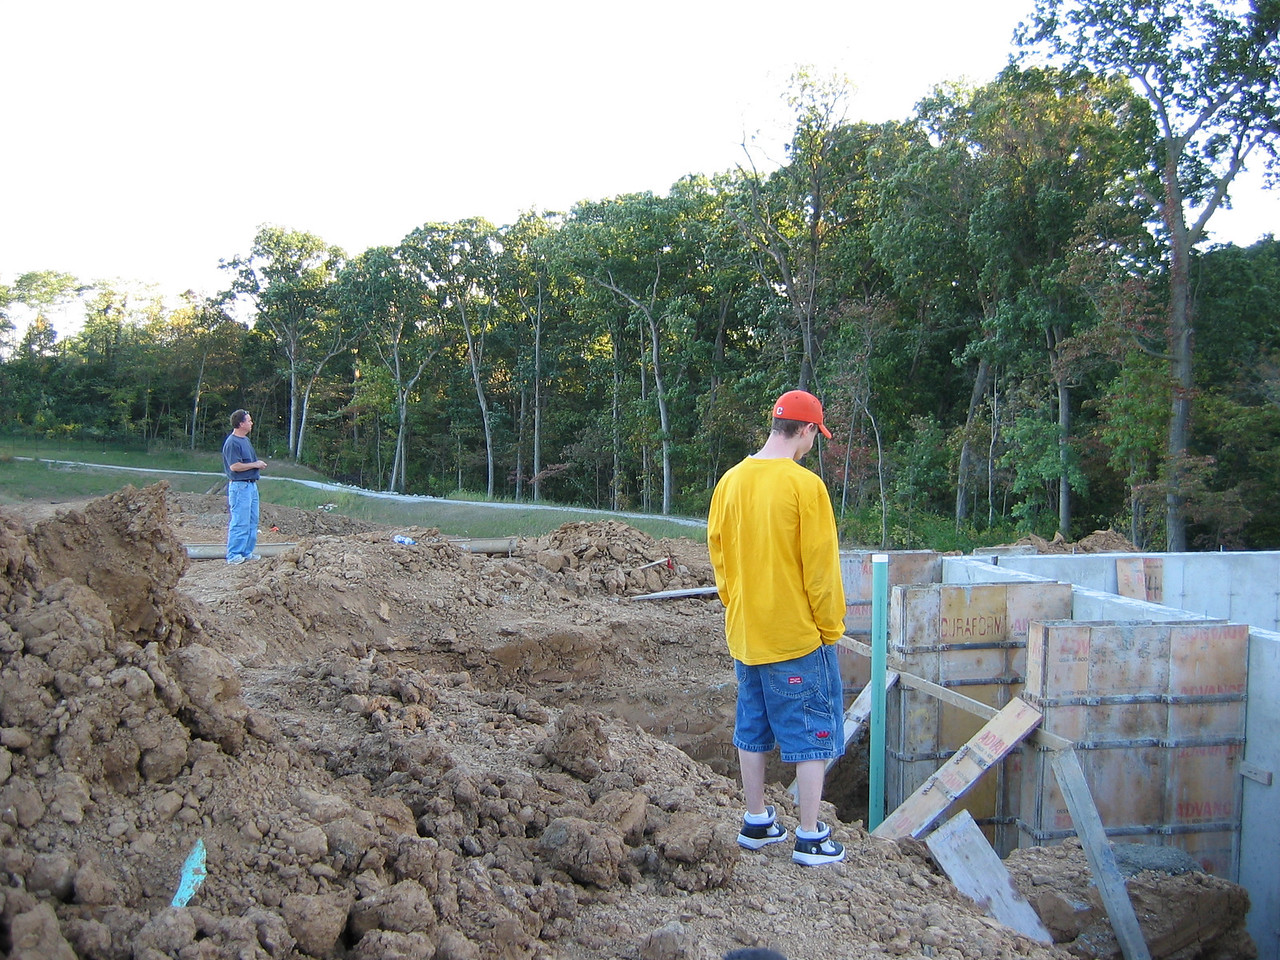 View of Foundation and Woods down to left September 28